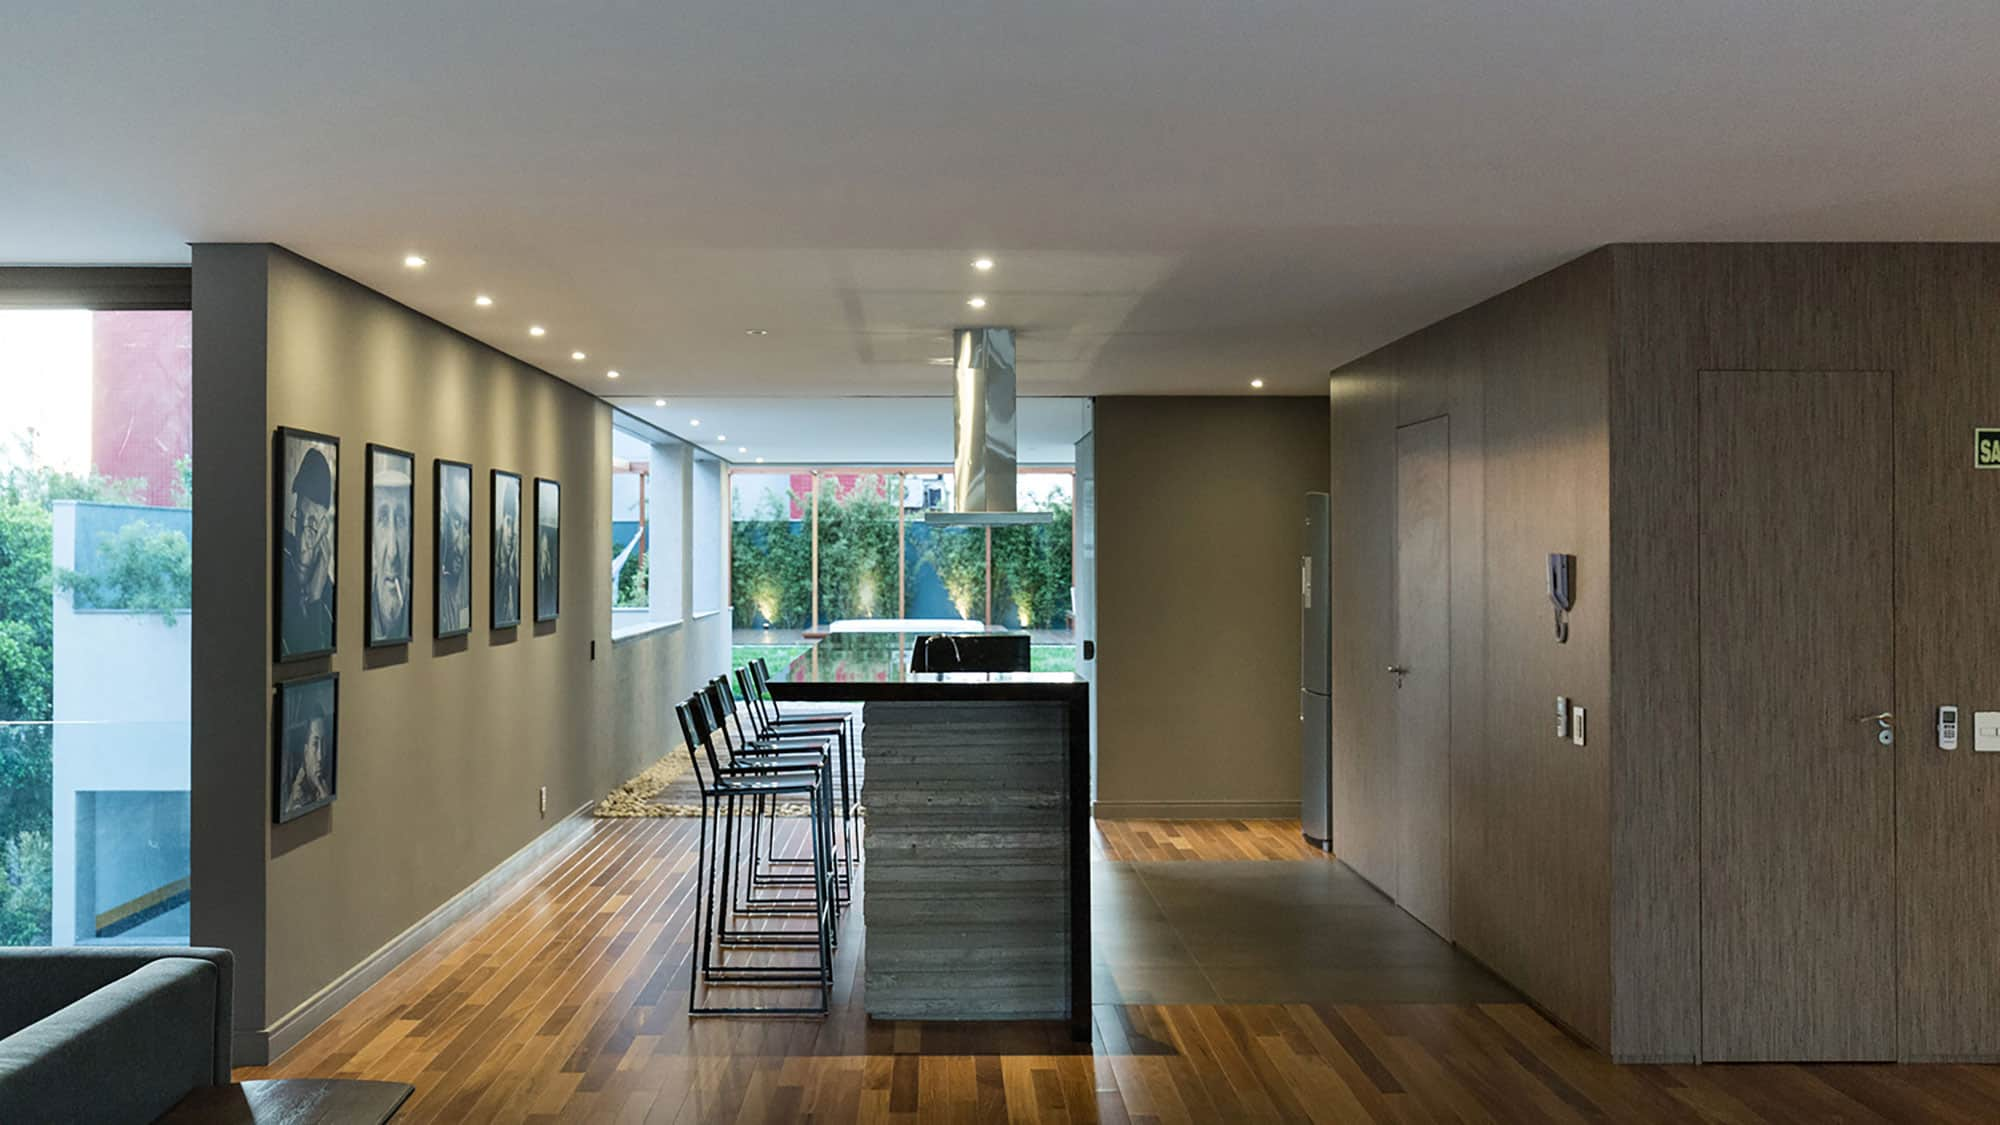 Fabulous Project in a Modern Style with Concrete and Glass Walls